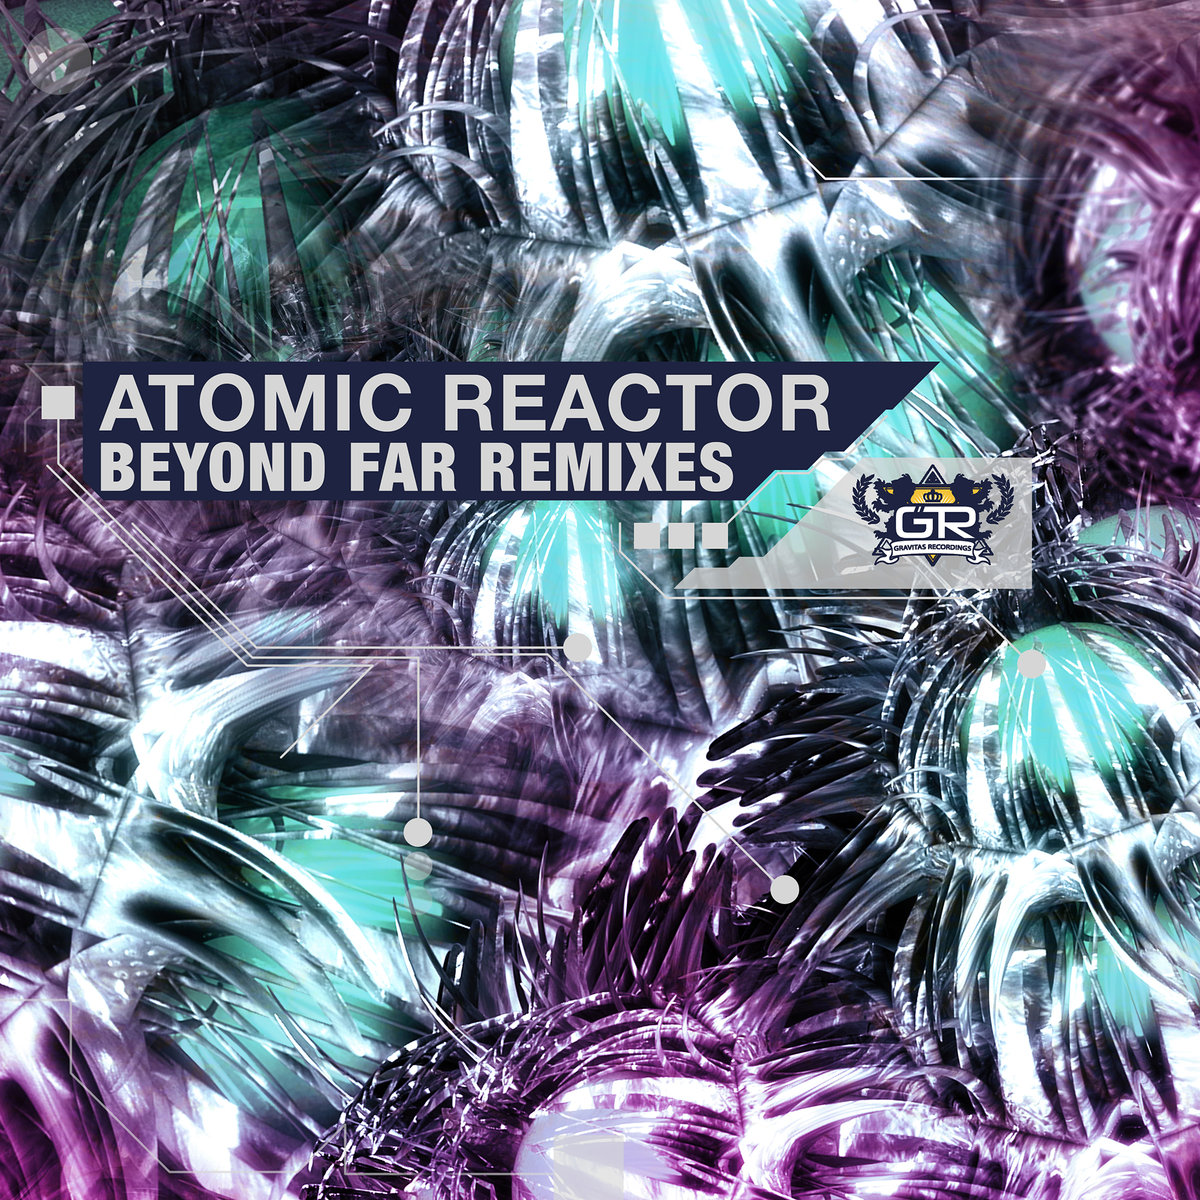 Atomic Reactor - Beyond Far (VIP Remix) @ 'Beyond Far Remixes' album (Austin)